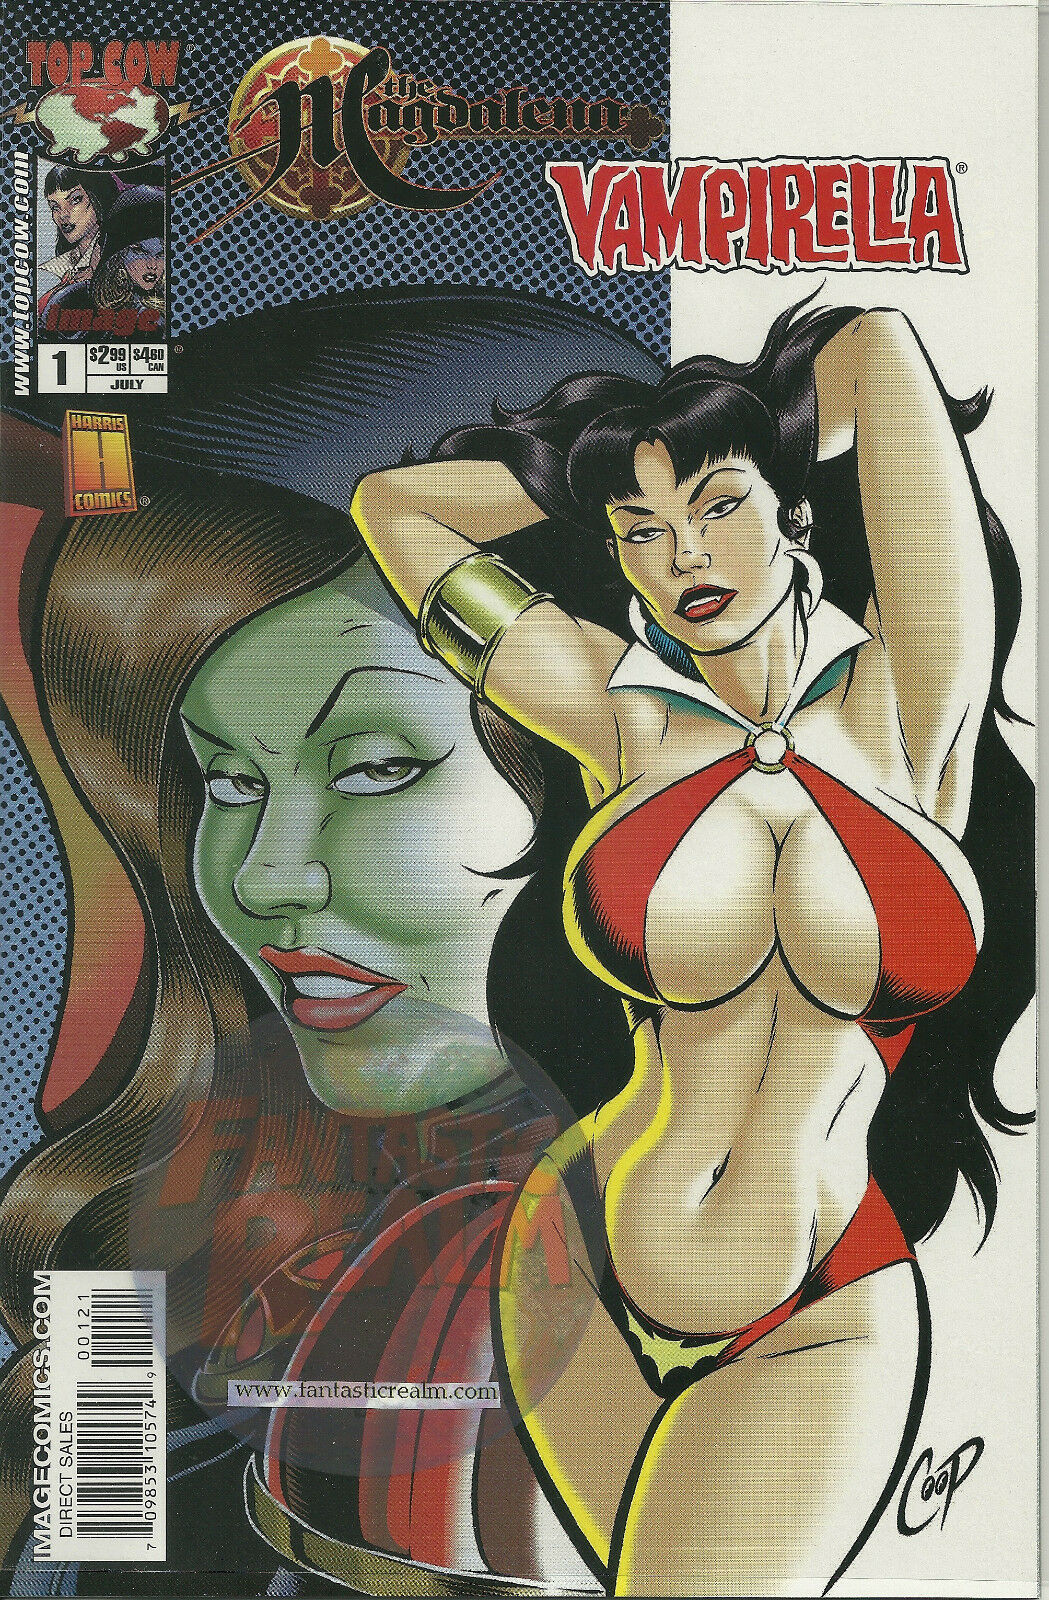 The Magdalena + Vampirella #1 Image Comic Book